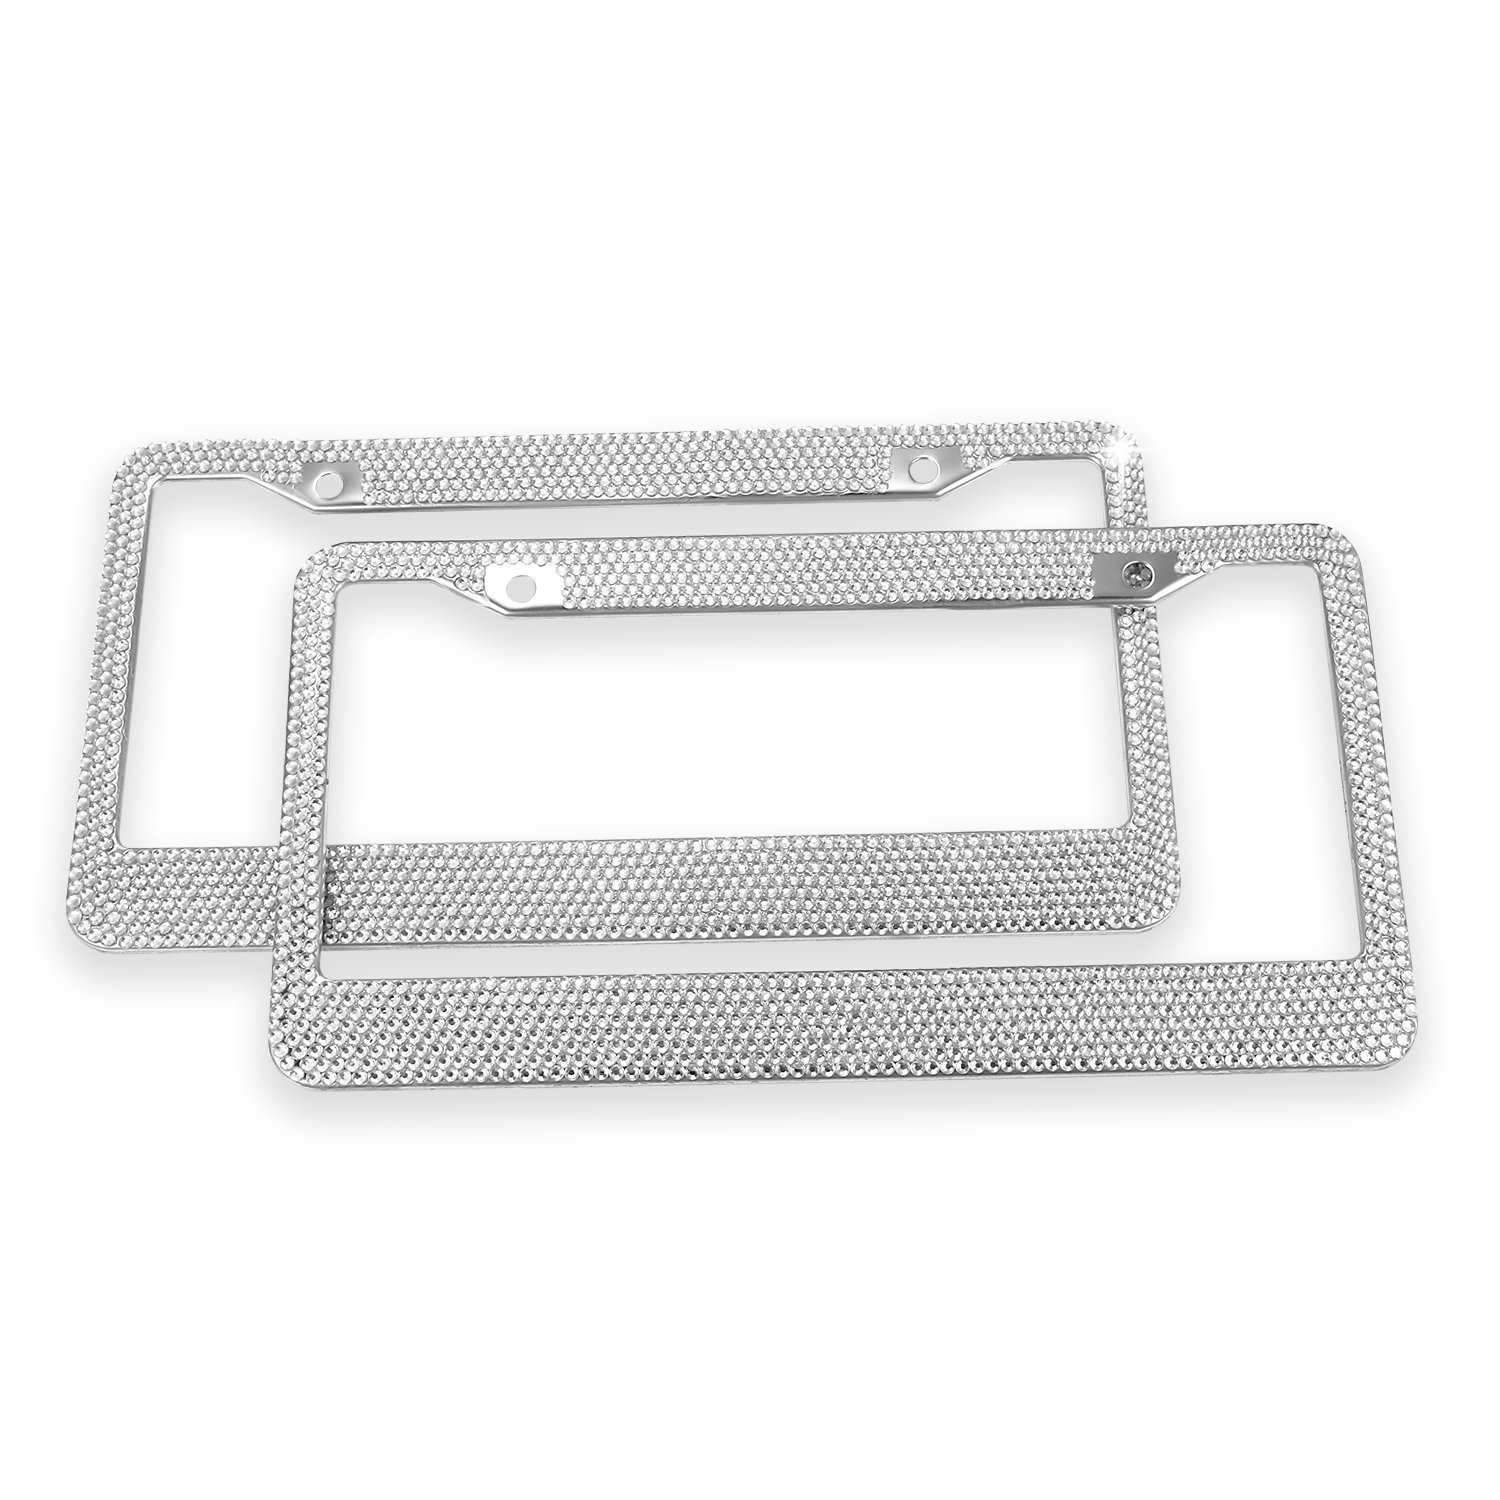 Sino Banyan Two Bling VIP Style License Plate Frame Coated Aluminum Rhinestones with Screw Caps,White,Set of 2 Pcs